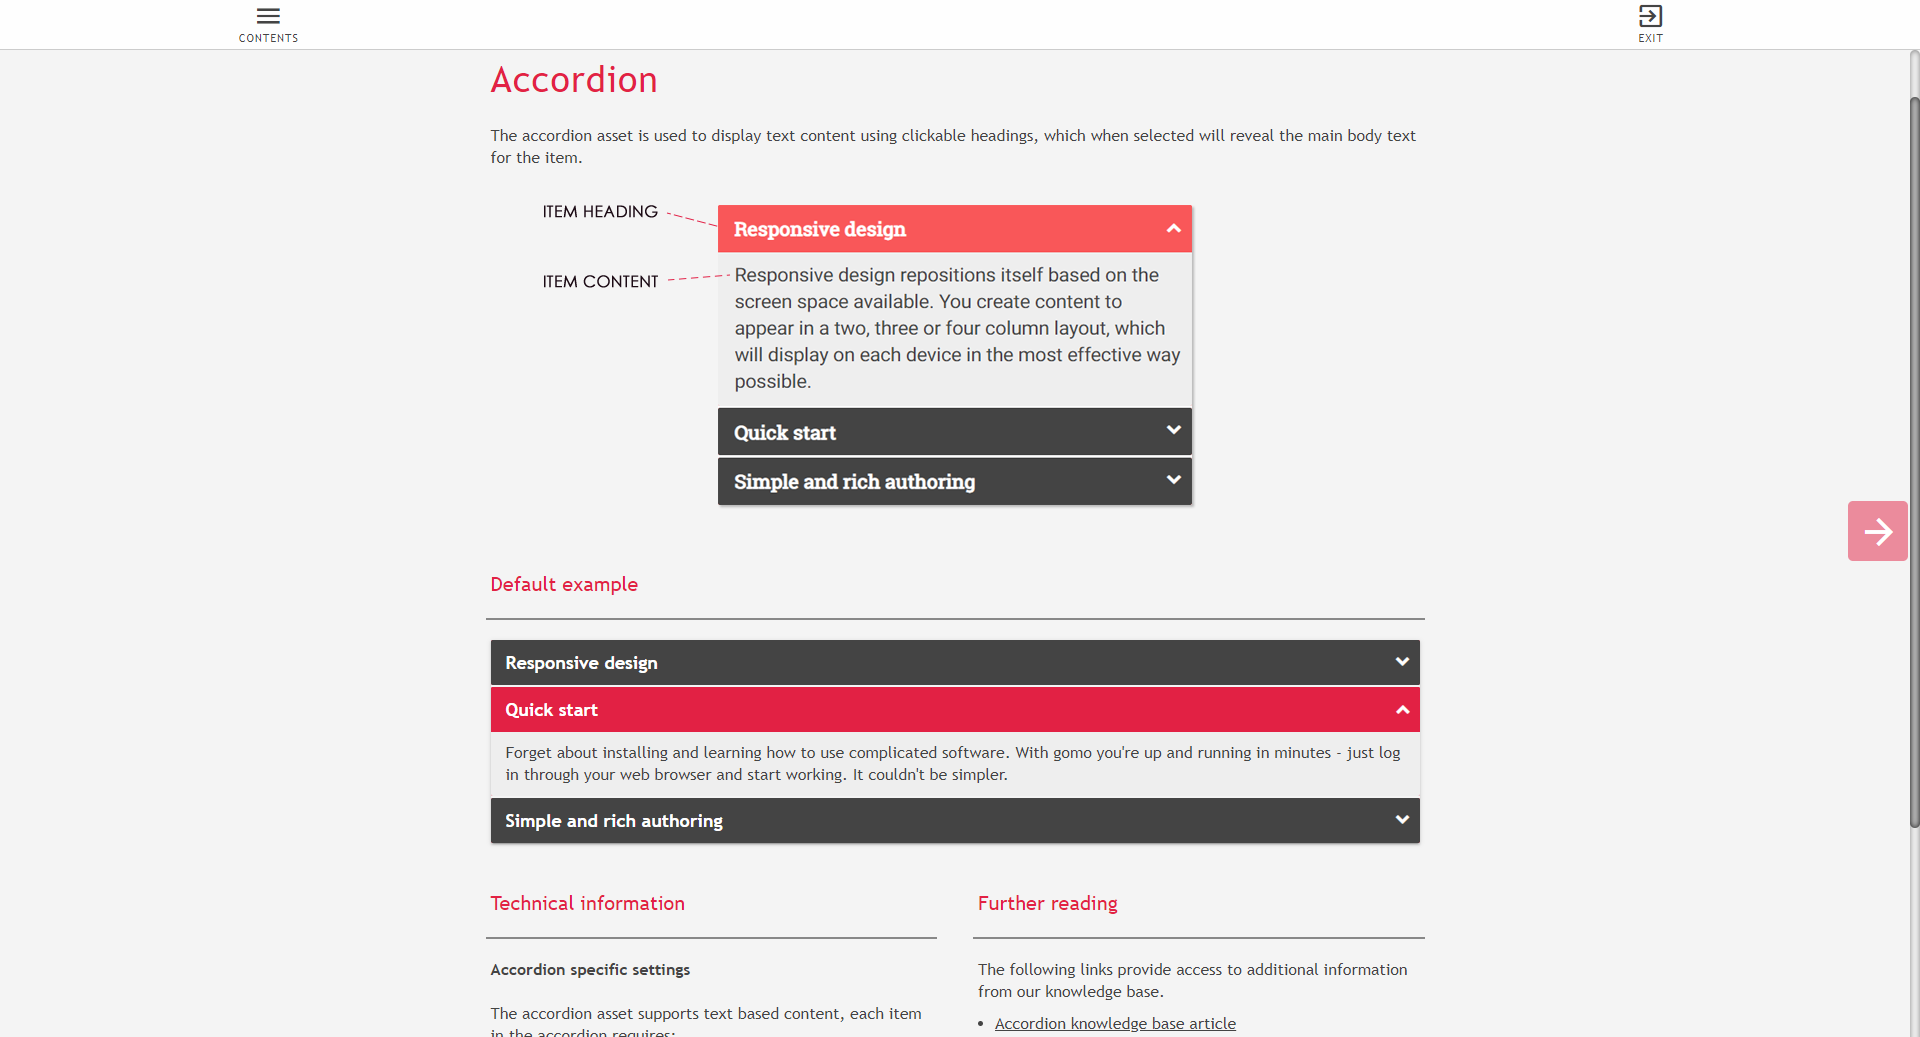 Example of Gomo learning accordion asset